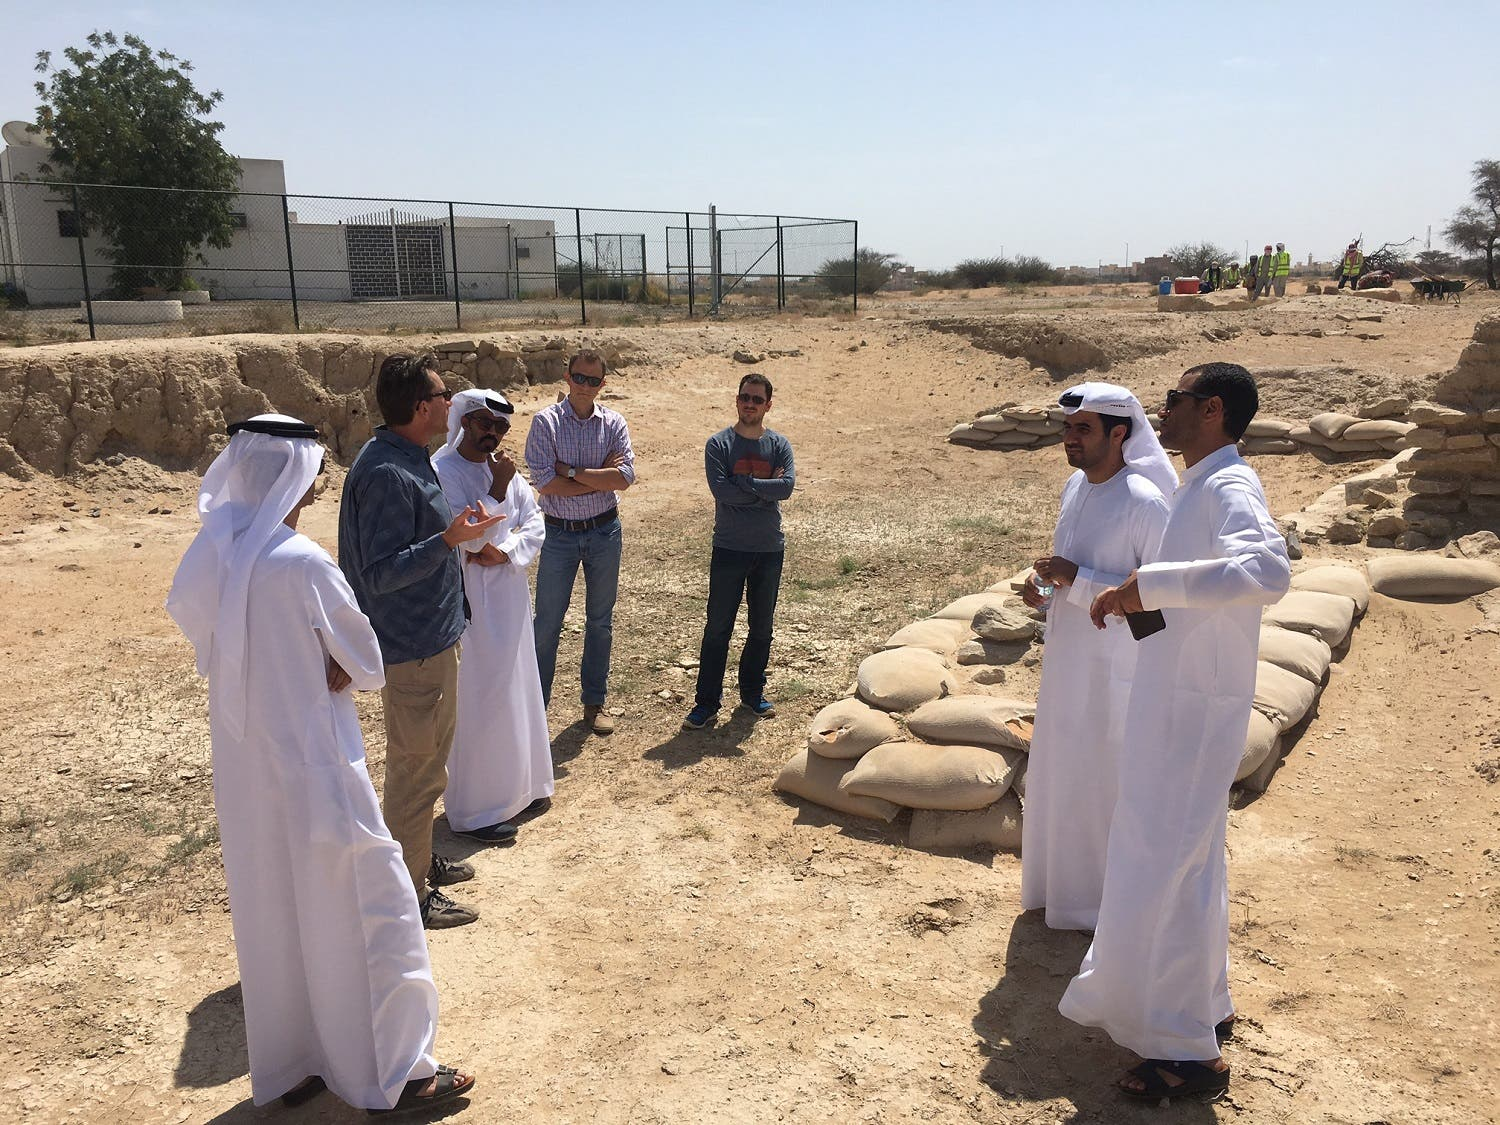 TCA archaeologists and foreign consultants discuss strategies and ideas before the excavation begins. (TCA Abu Dhabi)